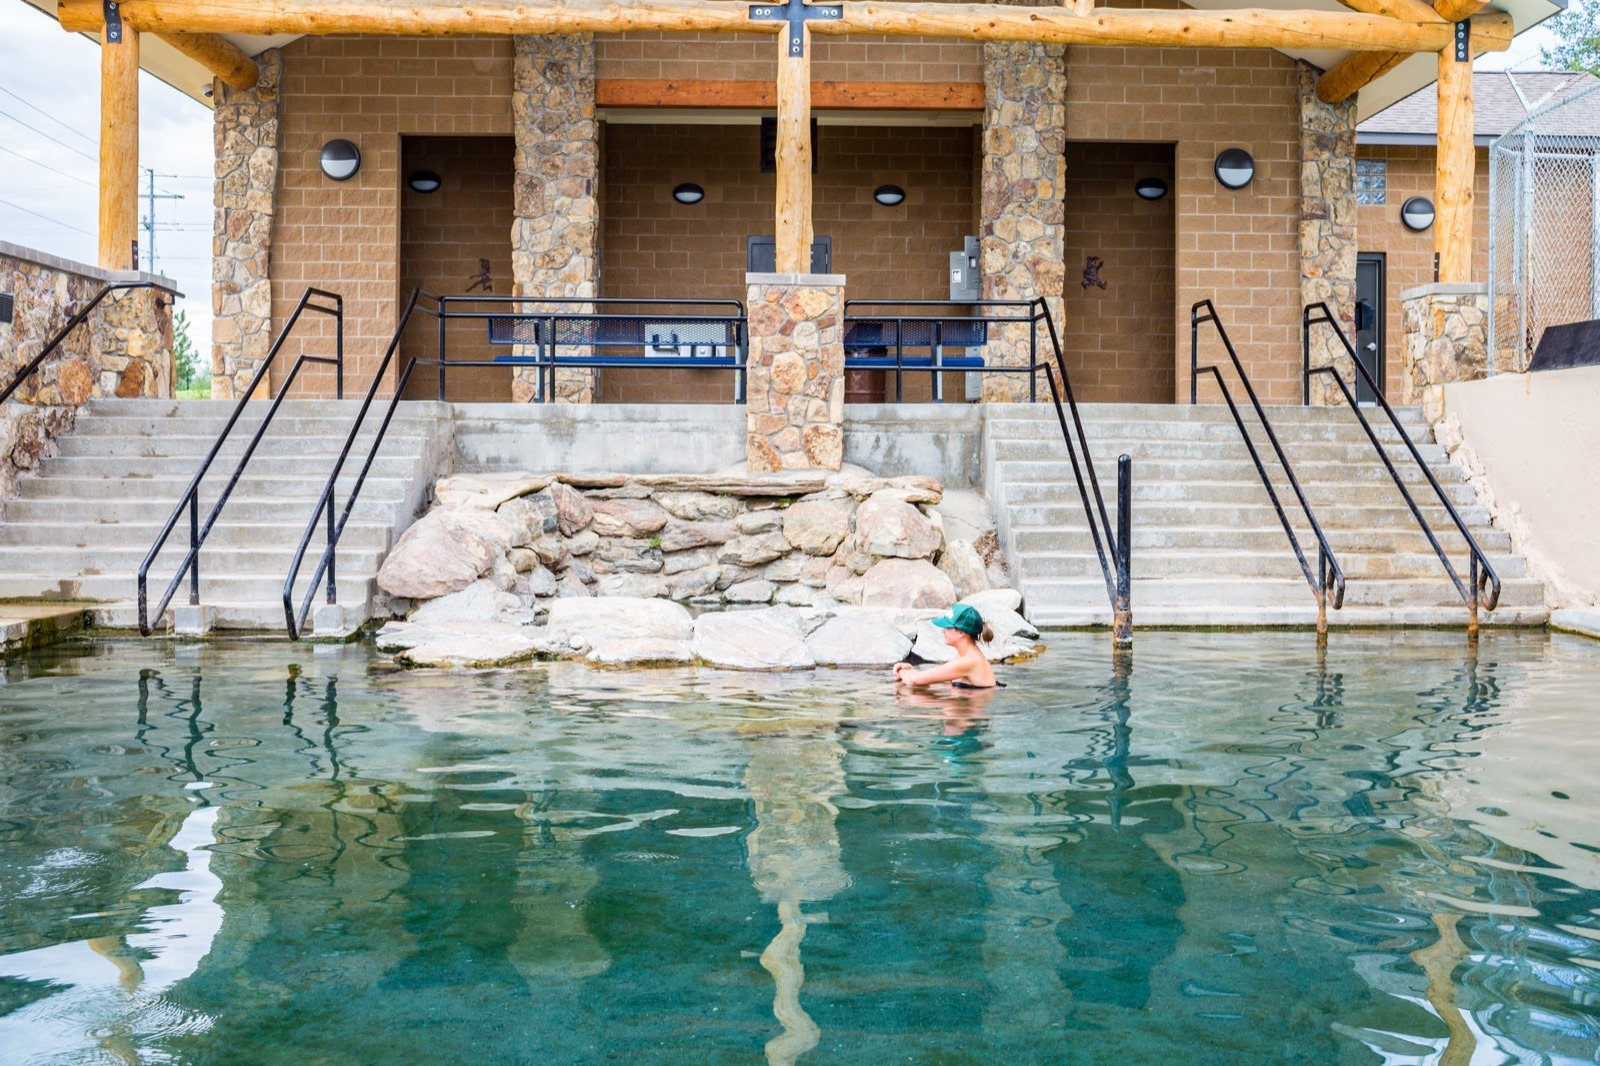 Escape to Saratoga's hobo hot springs (they're free)